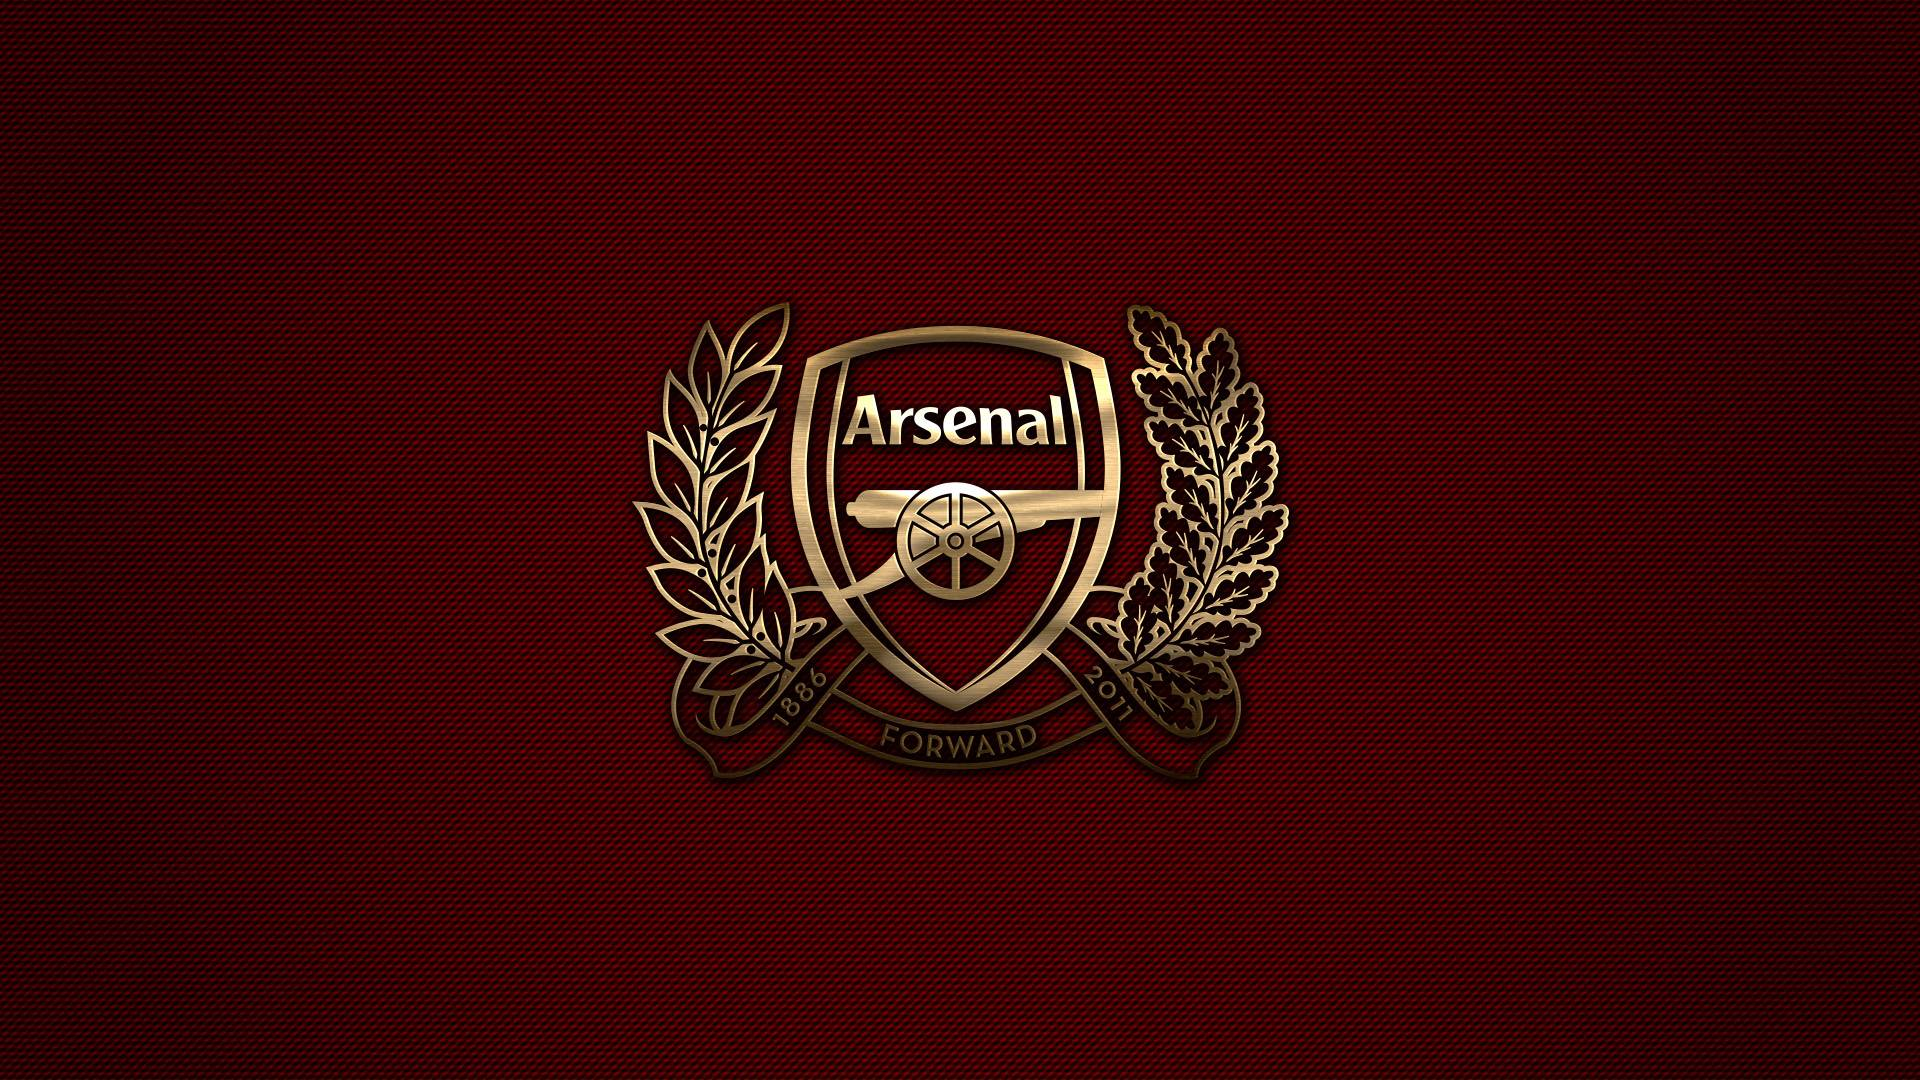 Arsenal HD Wallpapers - Wide wallpapers - Widewallpapers.